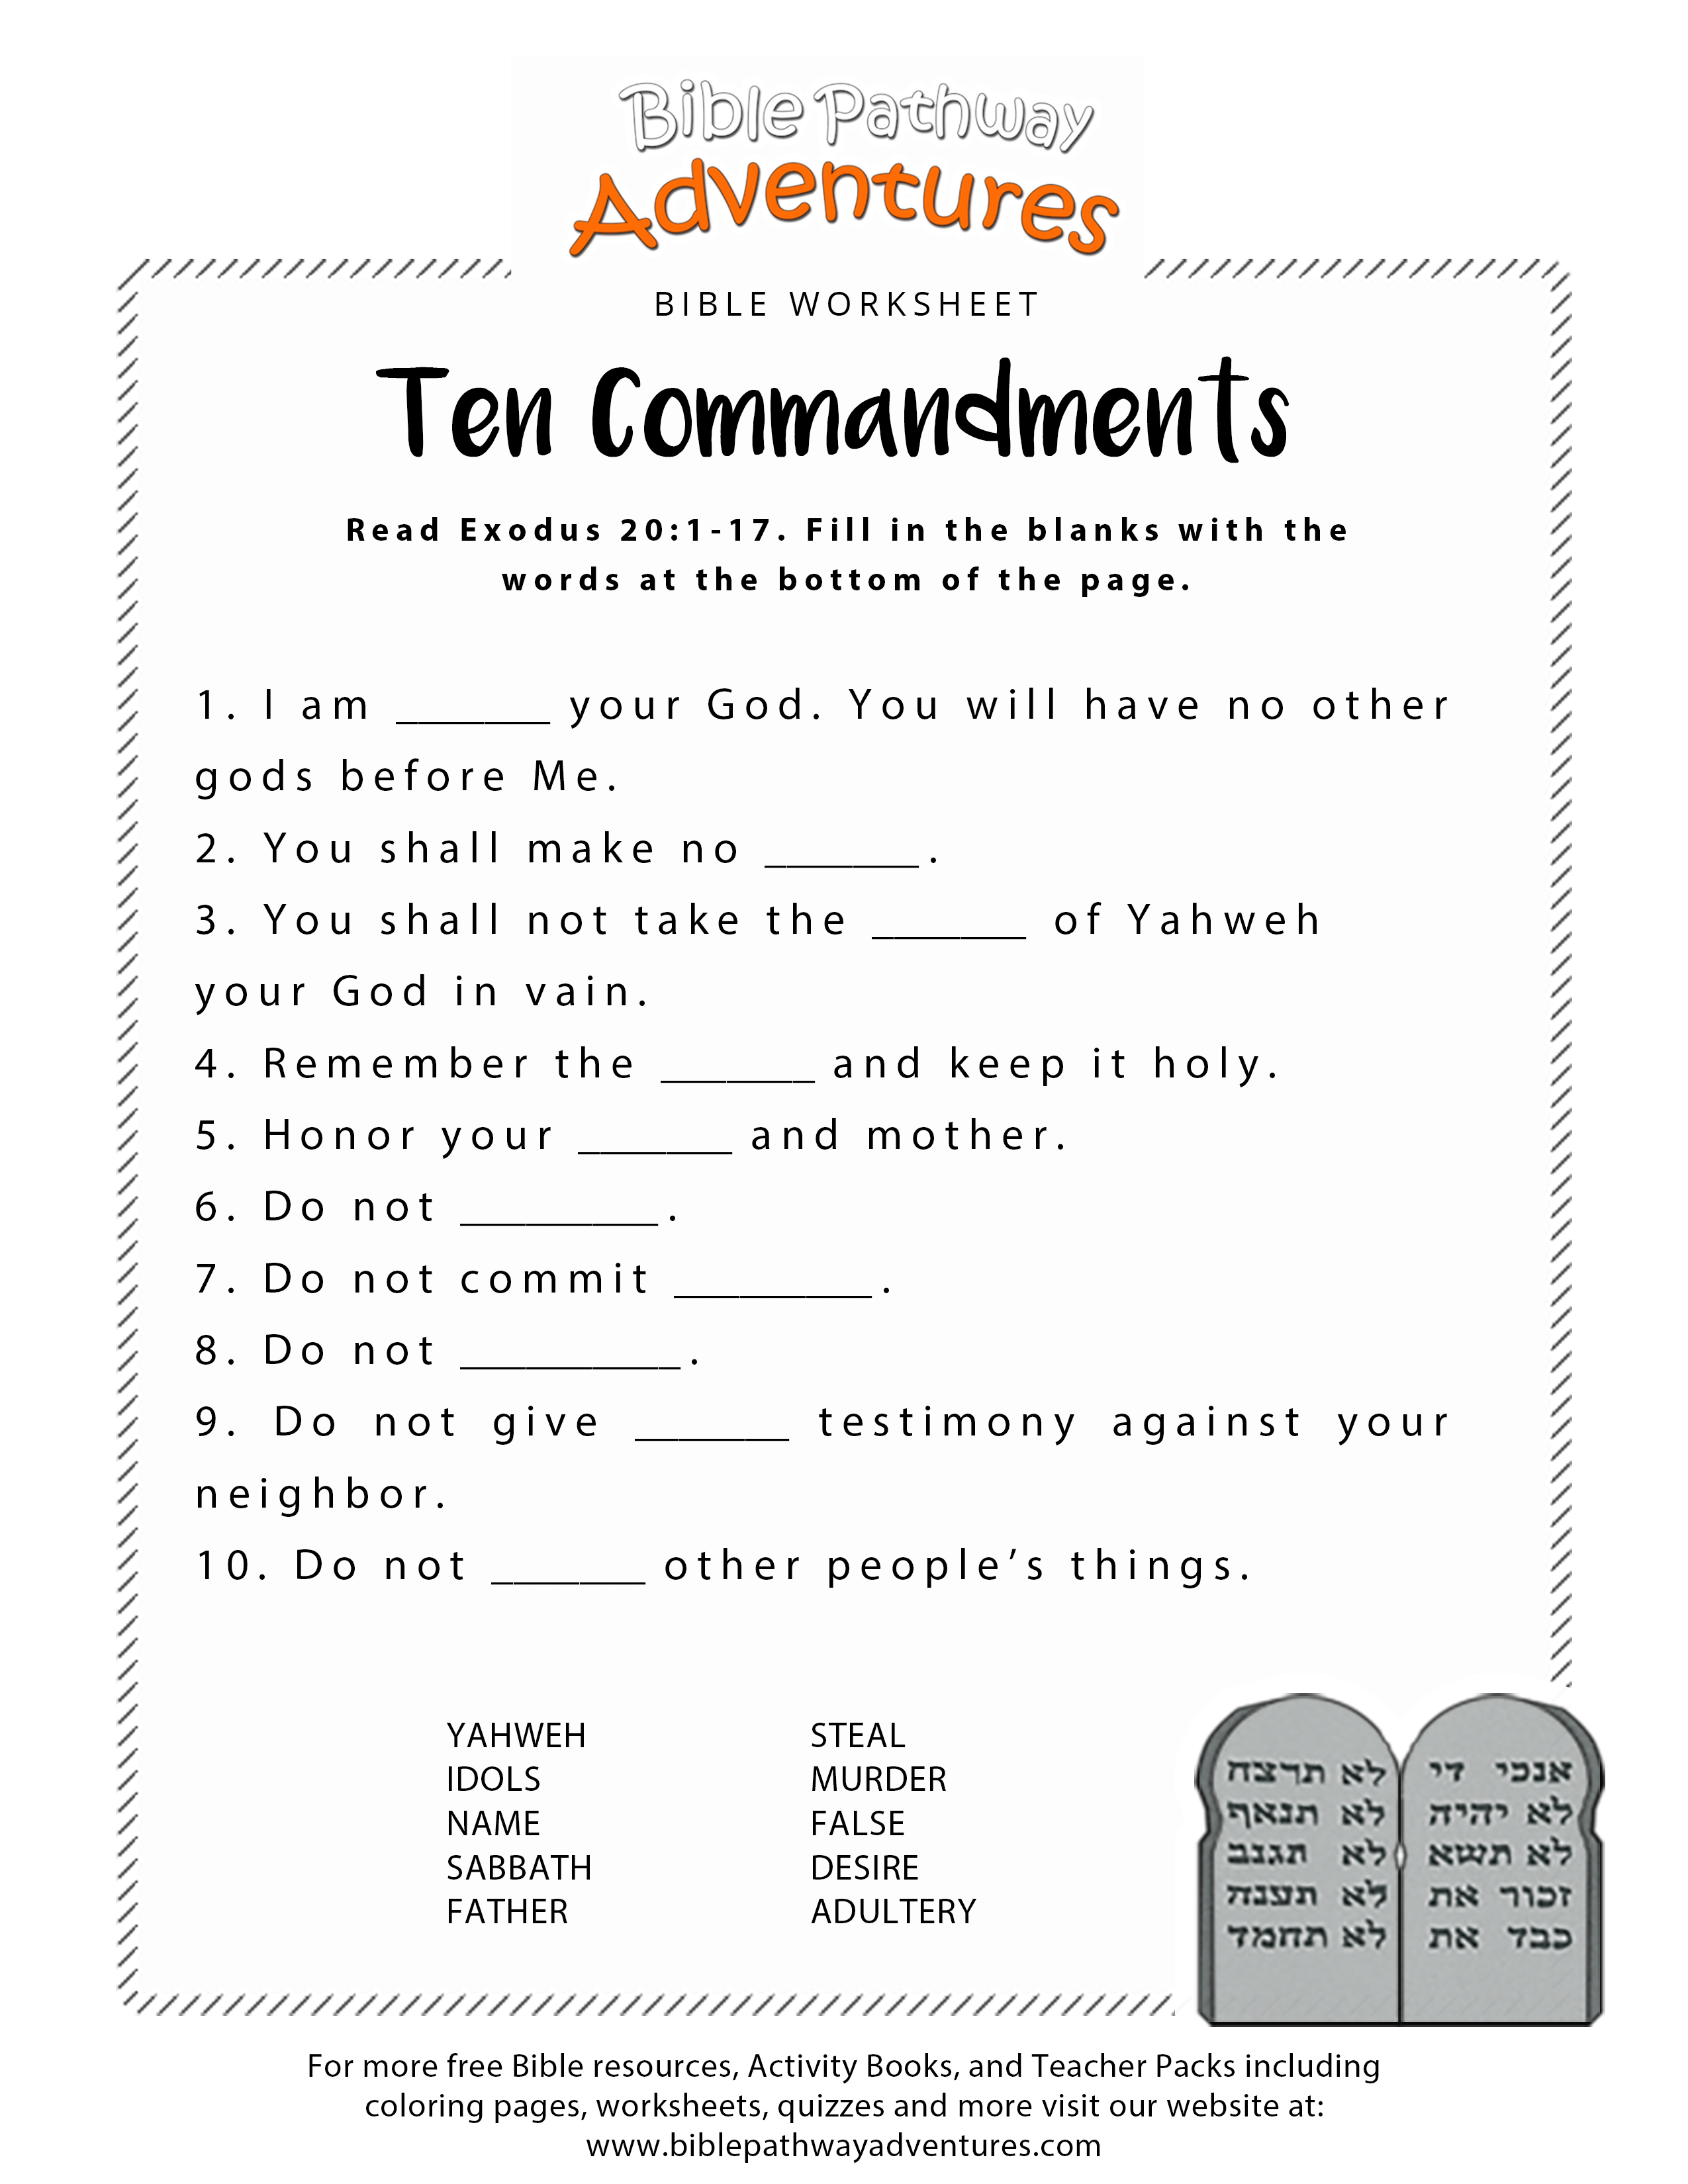 Légend image with 10 commandments printable worksheets